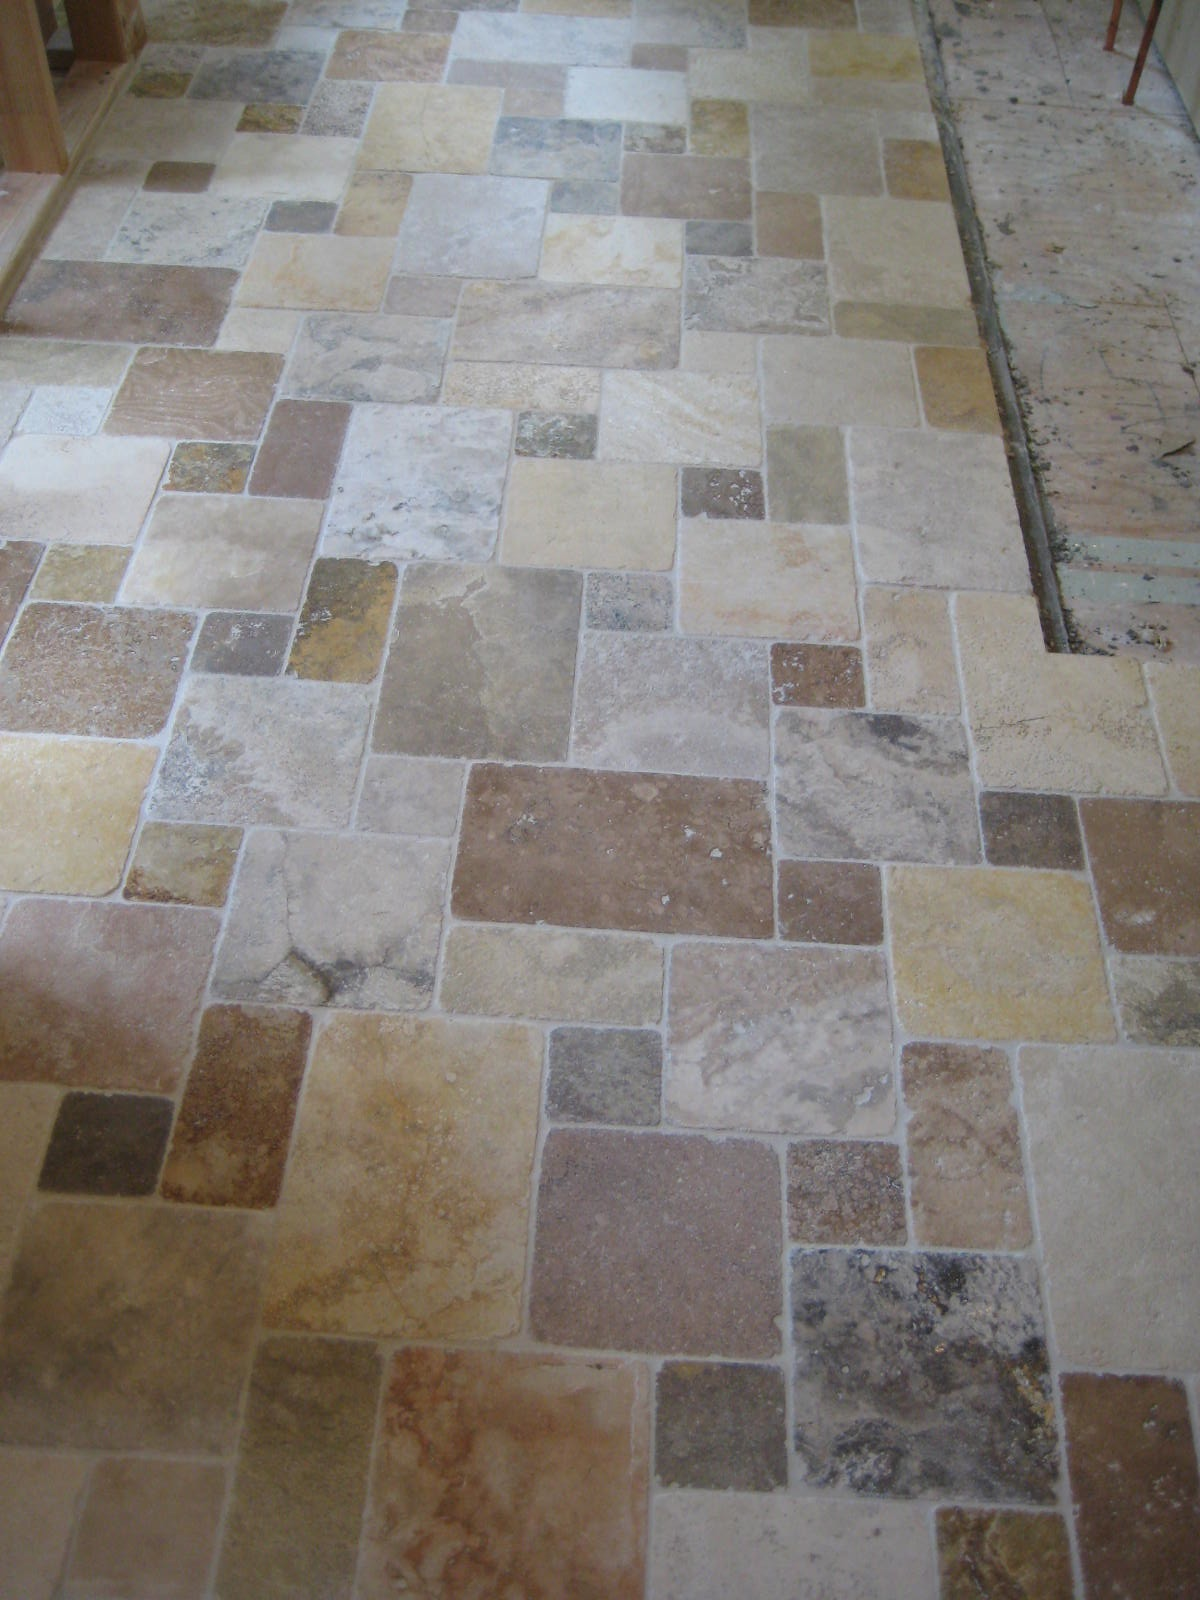 ... Ceramic Floor Tile Pattern ...